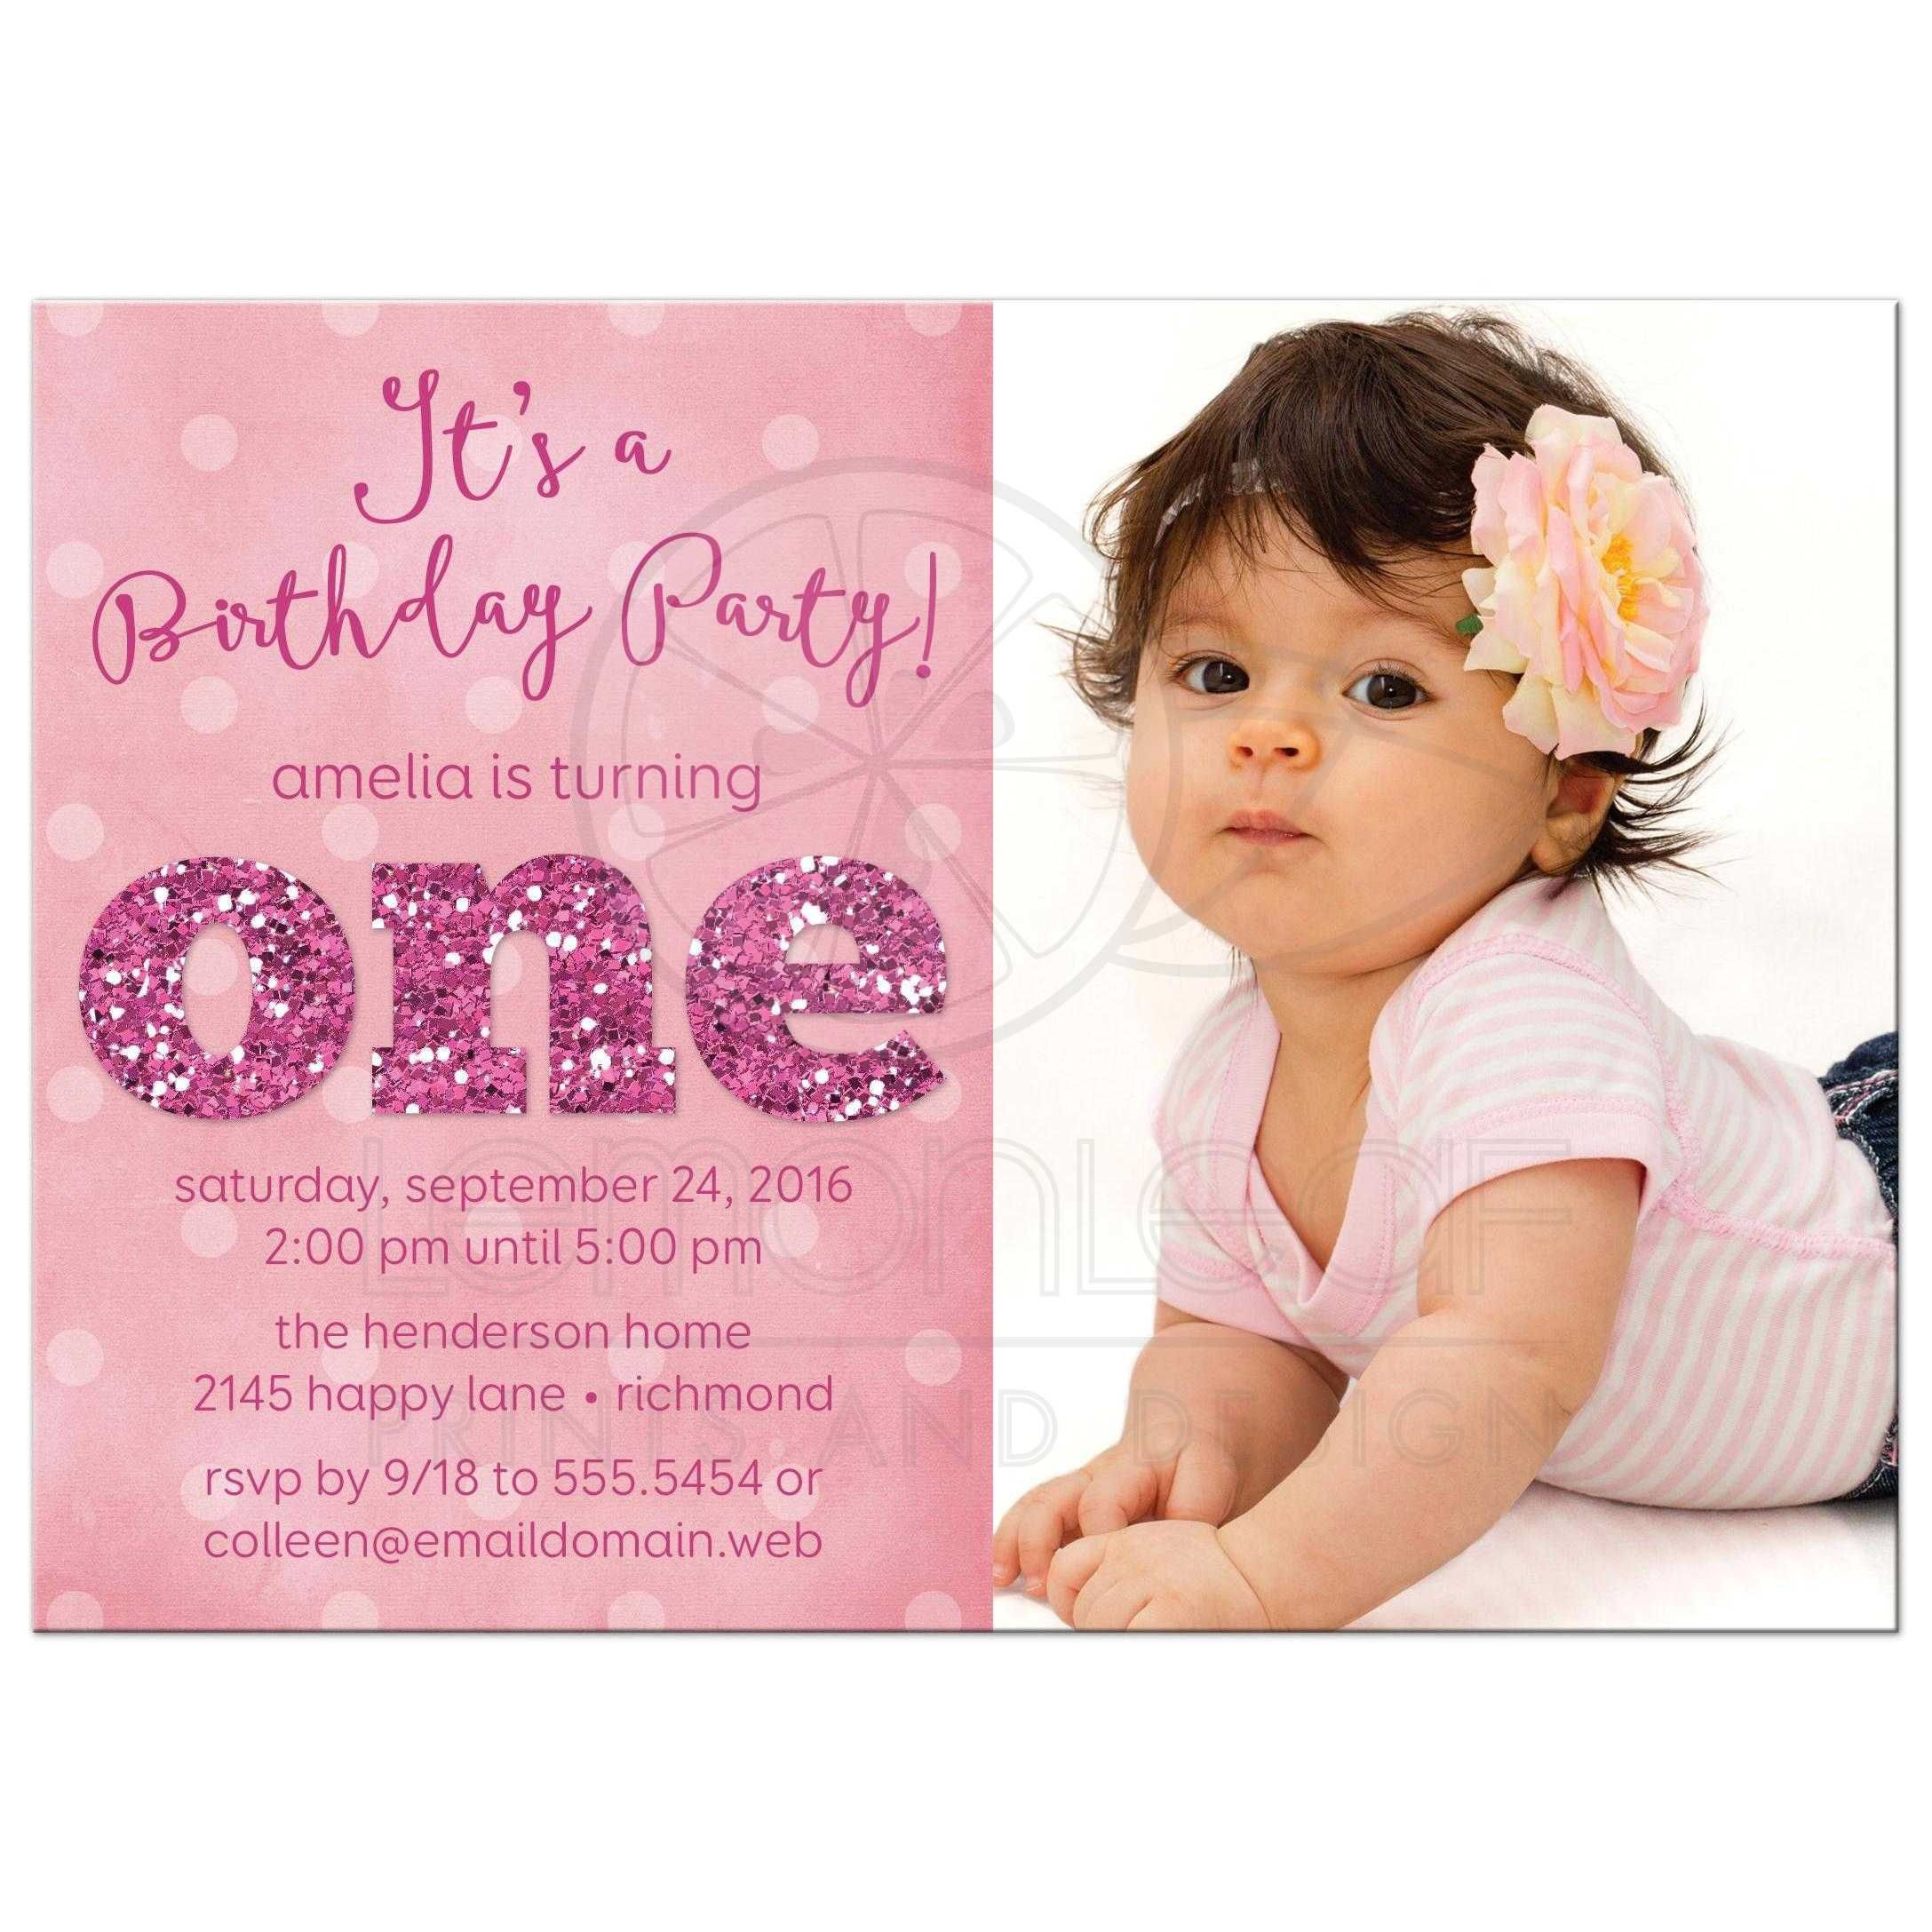 006 Archaicawful Free Online 1st Birthday Invitation Card Maker For Twin Inspiration Full